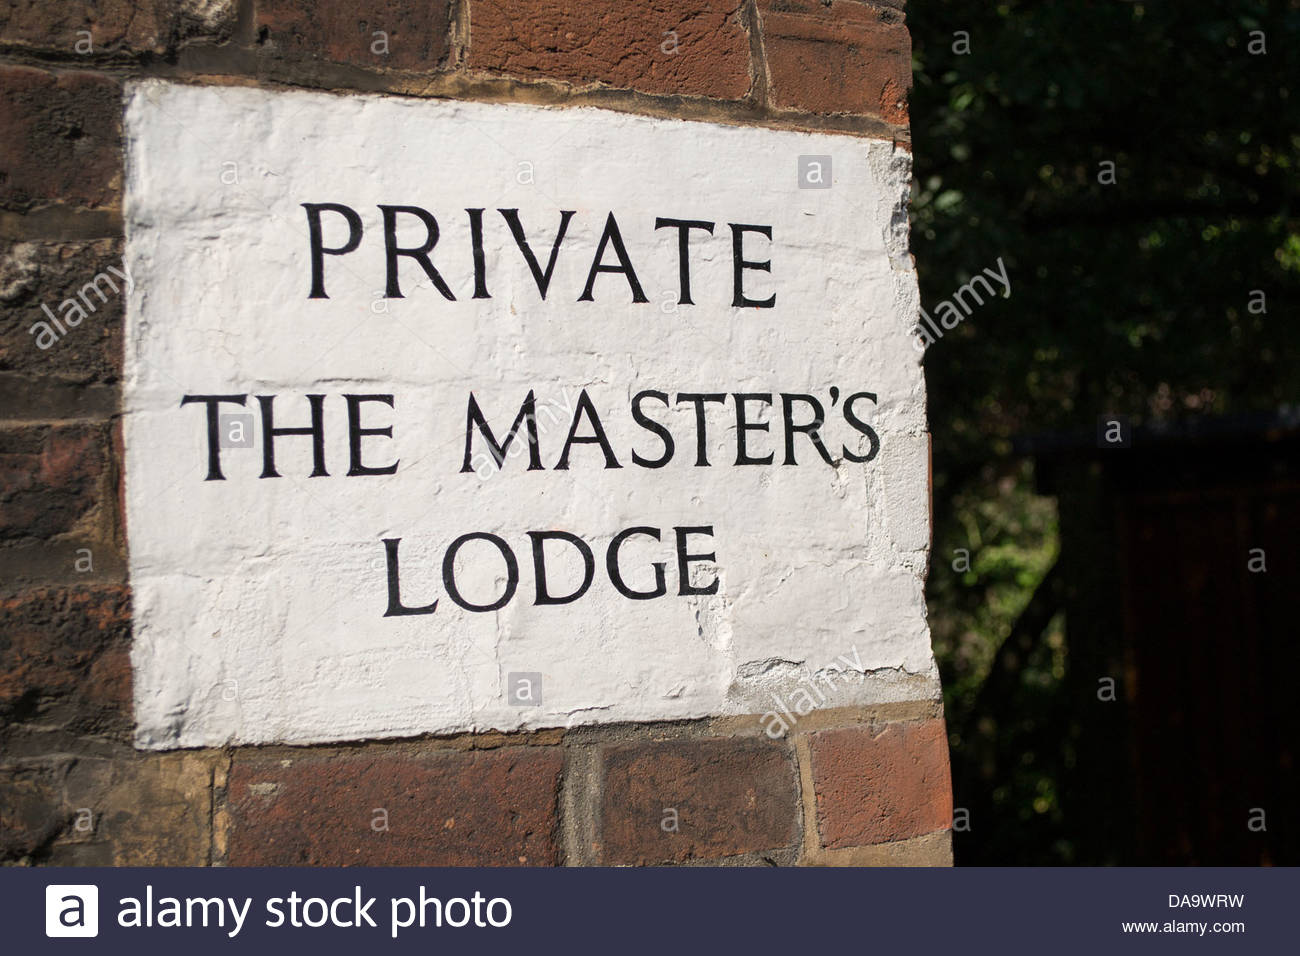 Sign on Jesus Lane, Private, The Master's Lodge - Stock Image